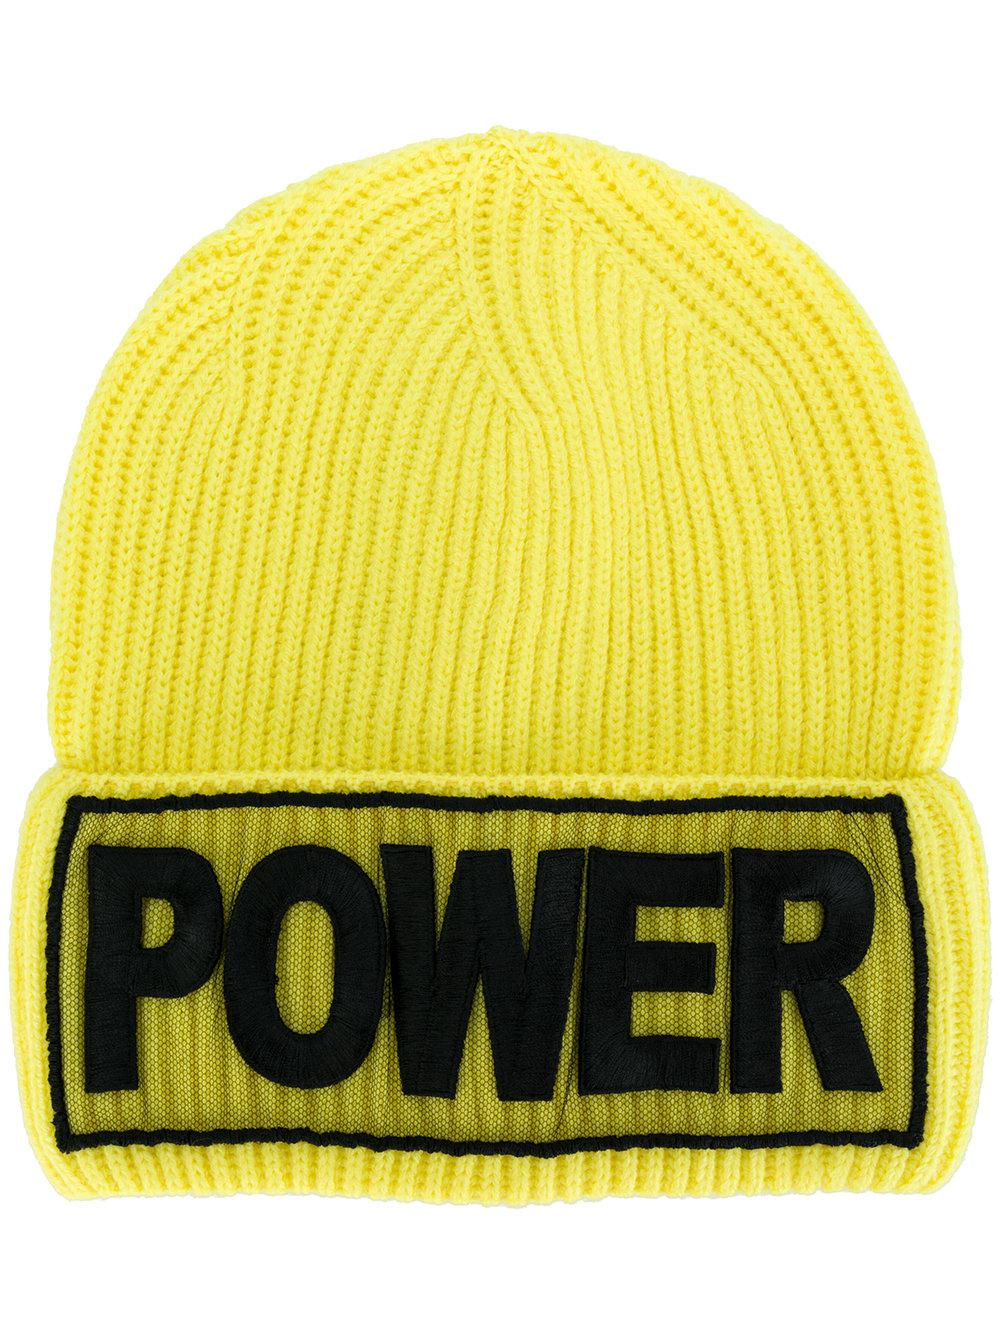 Versace. Men's Yellow Power Embroidered Beanie Hat